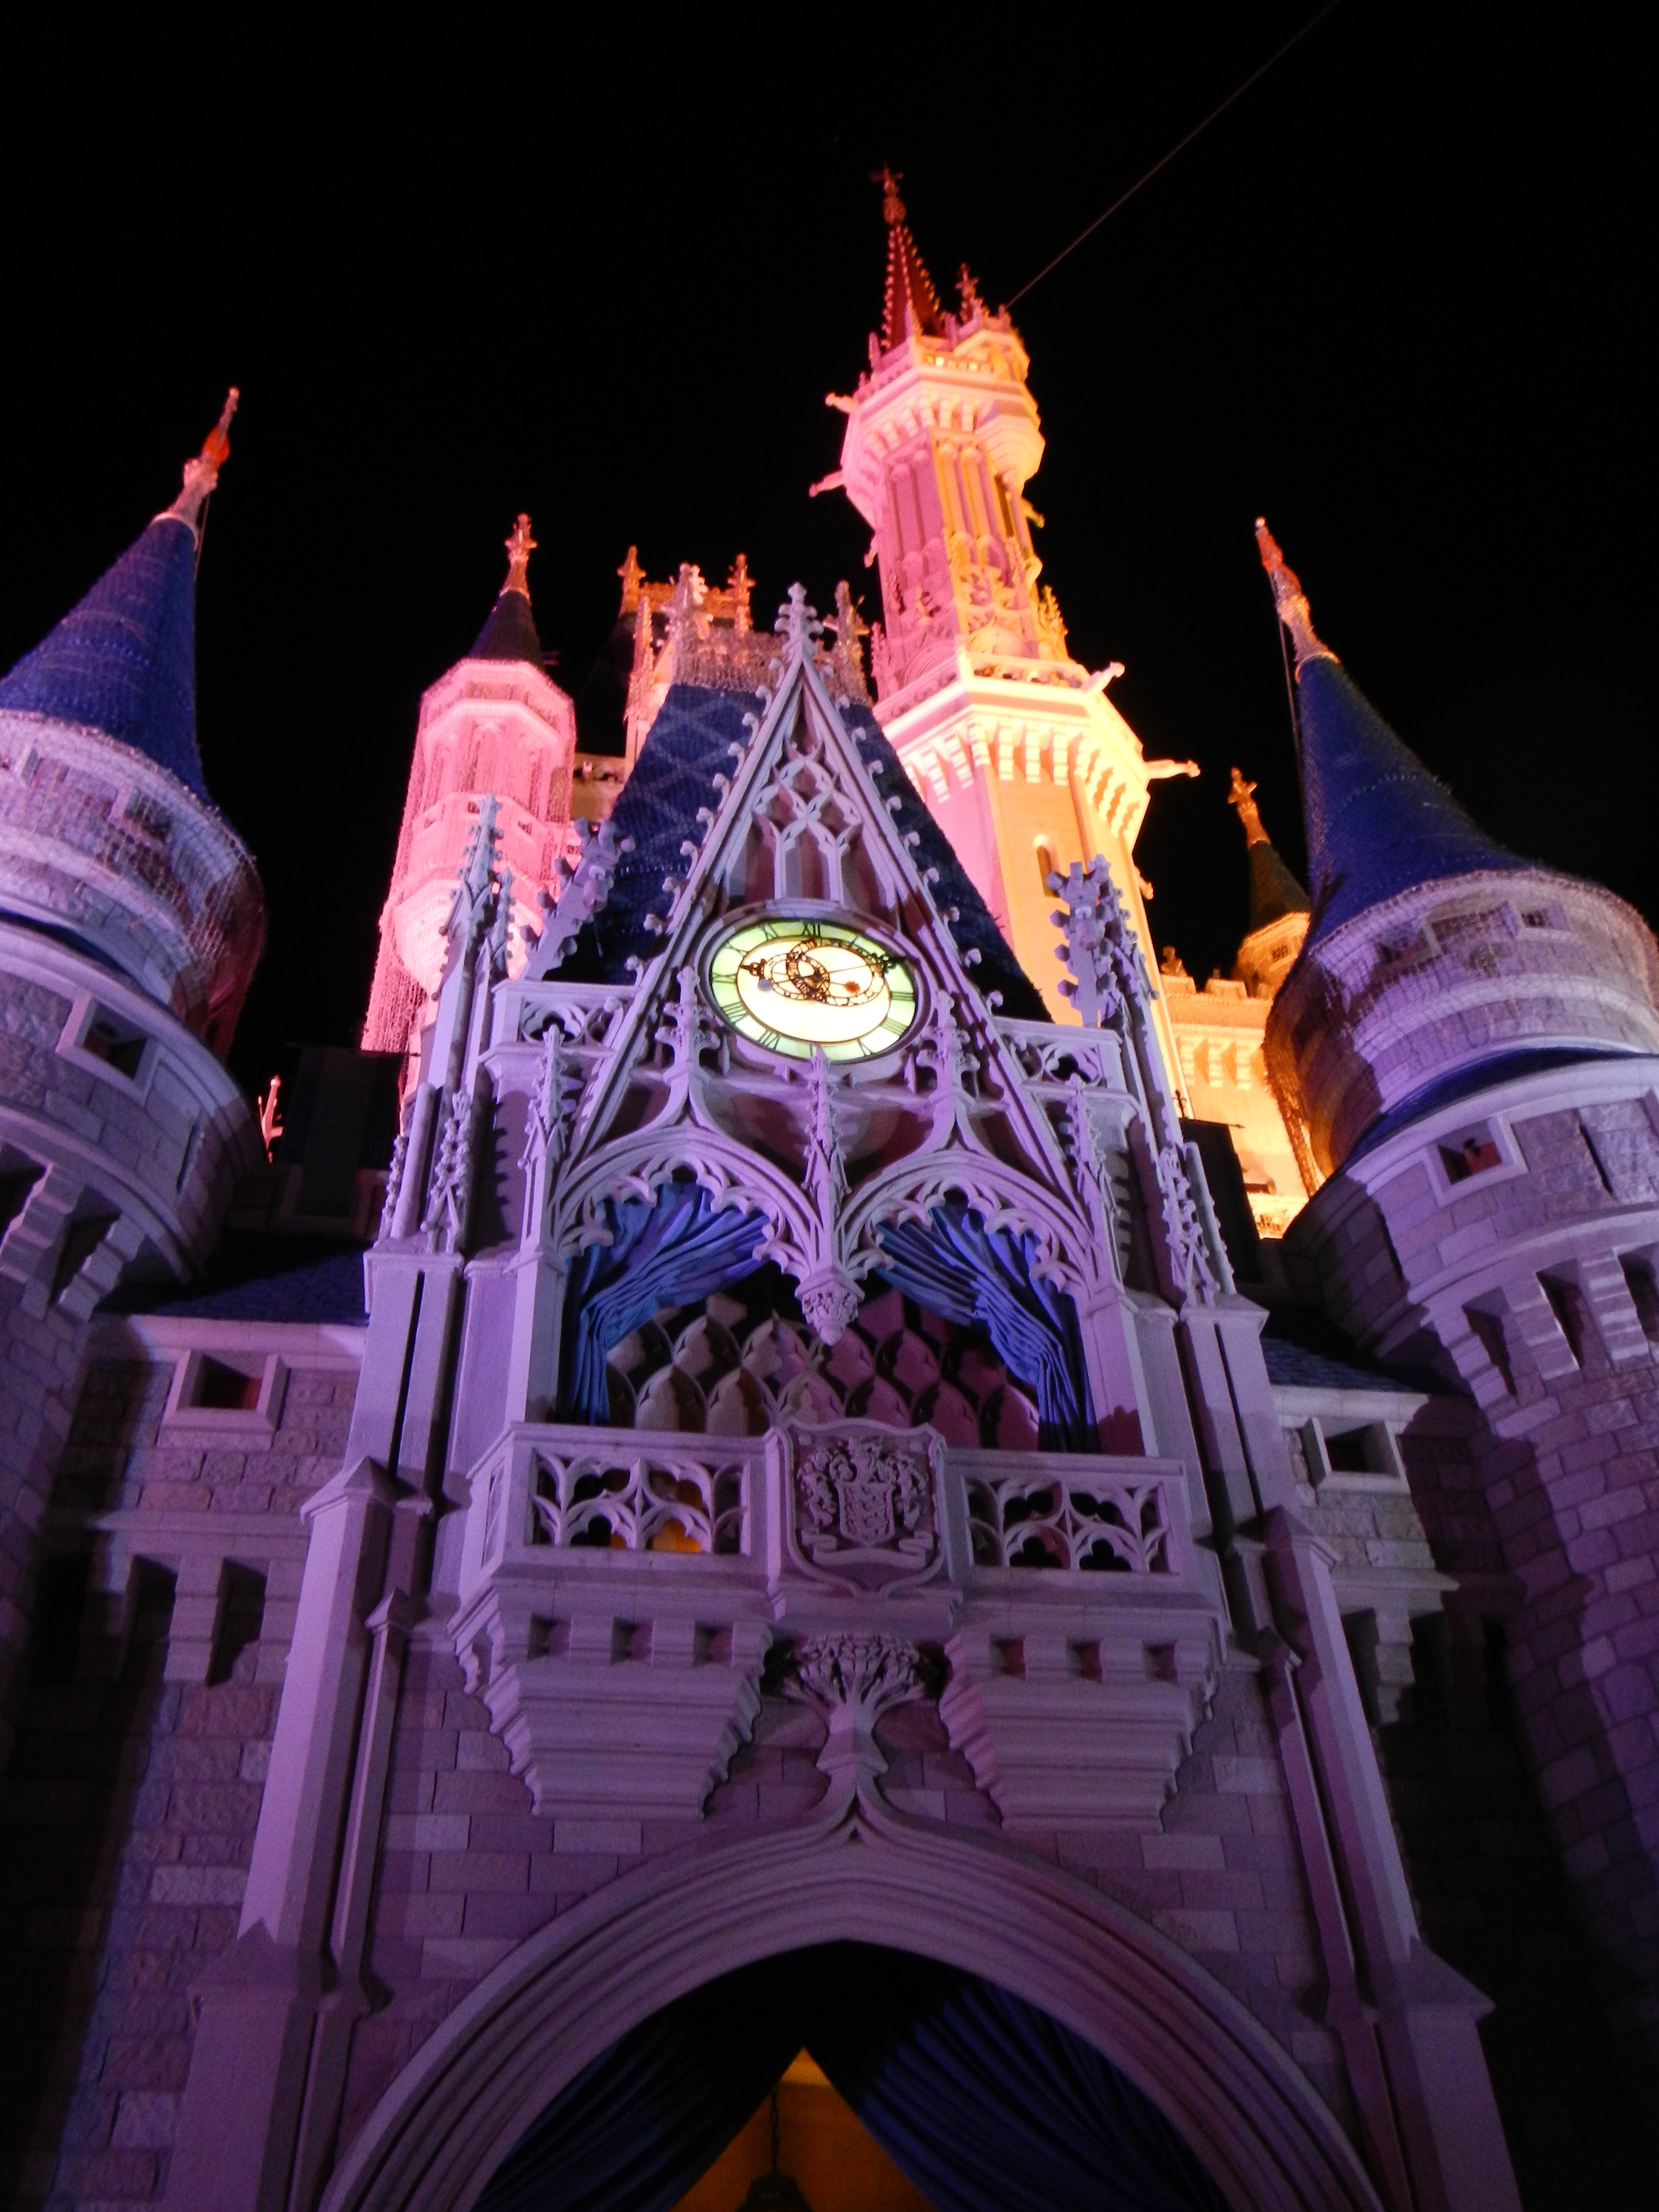 The nighttime images of the Cinderella's Castle are pretty cool.